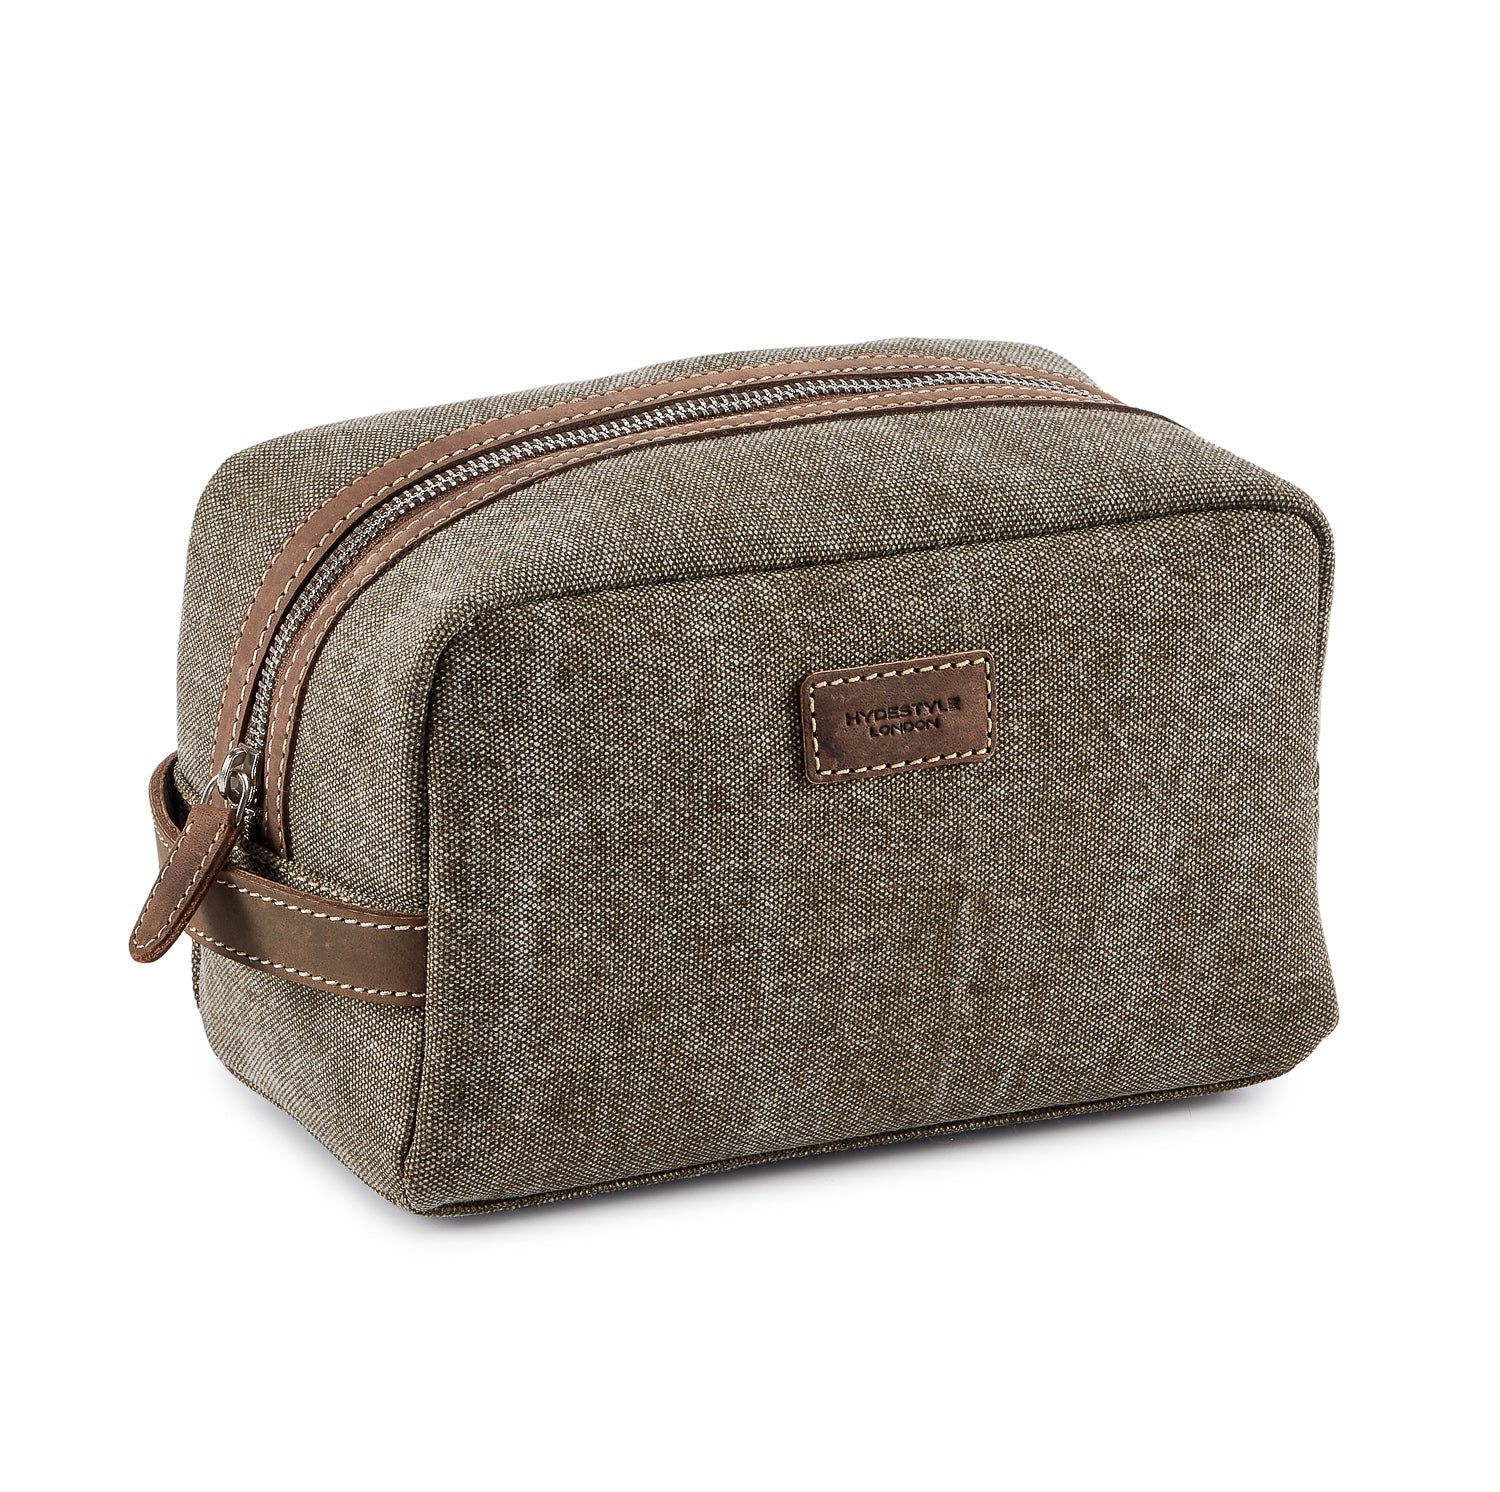 Travel Wash Bag/Toiletry Bag Canvas and Leather Wash Bag #MB2021